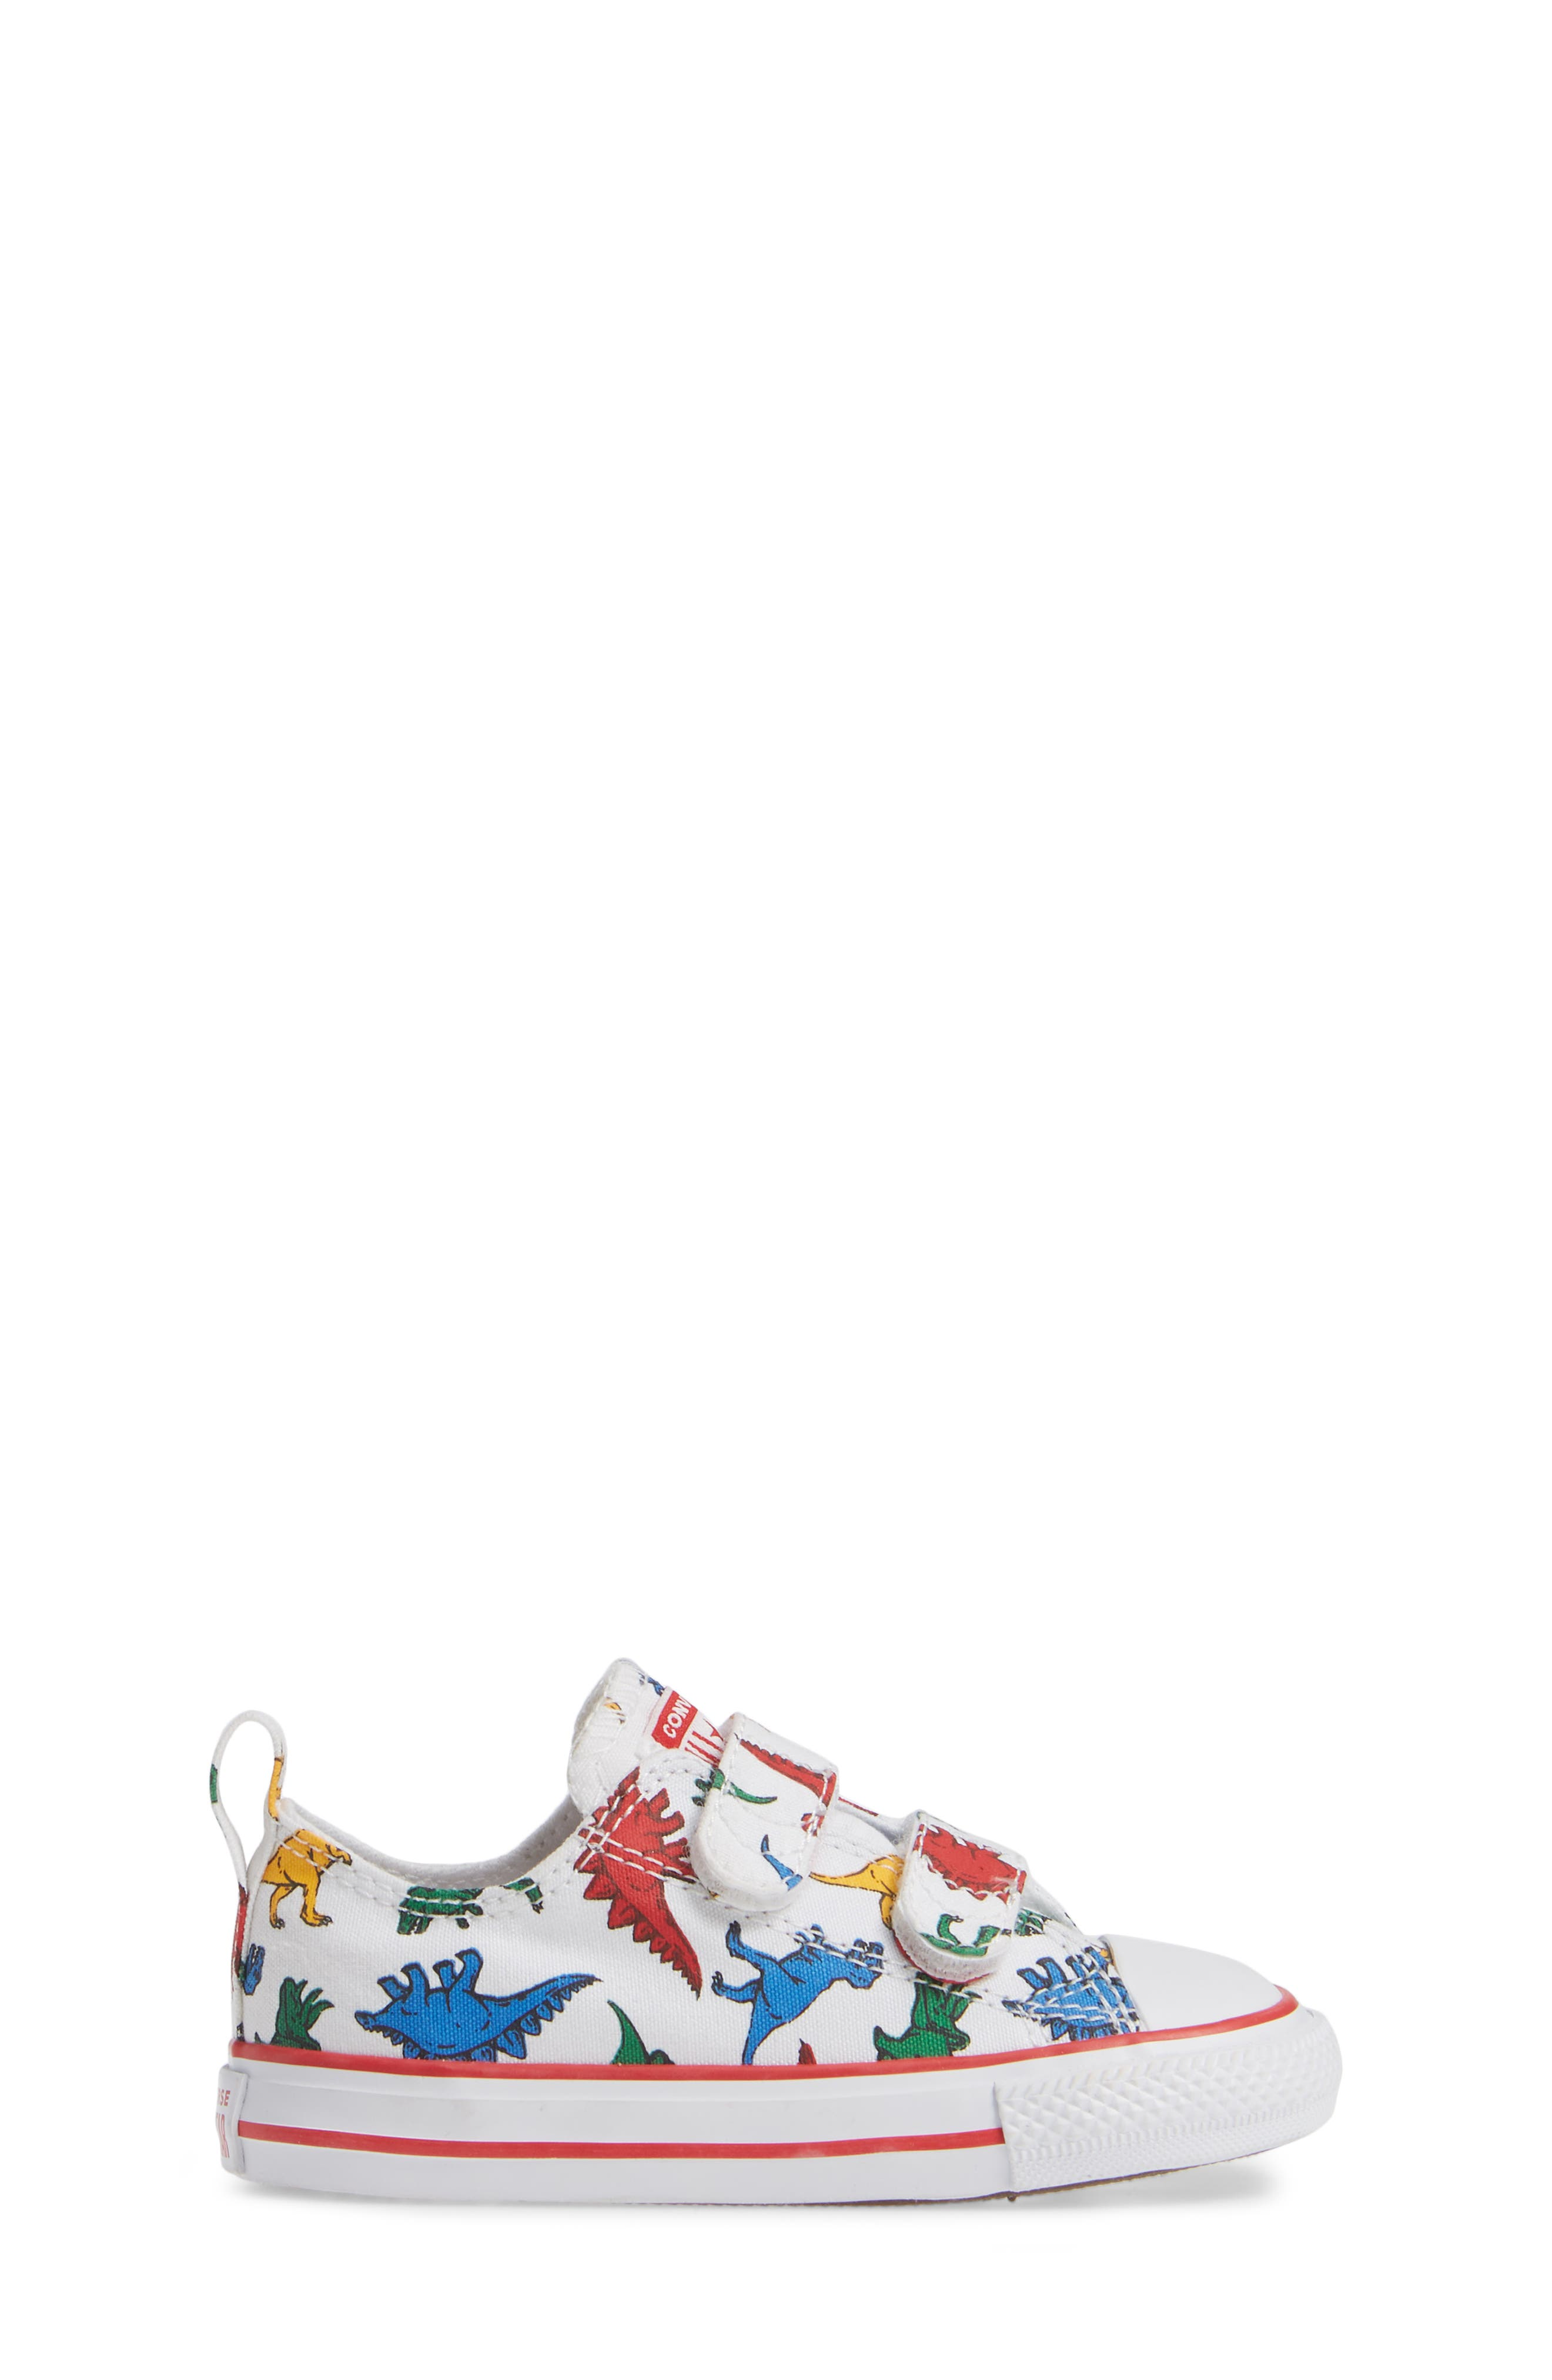 Chuck Taylor<sup>®</sup> All Star<sup>®</sup> Ox Sneaker,                             Alternate thumbnail 3, color,                             WHITE/ ENAMEL RED/ BLUE DINO